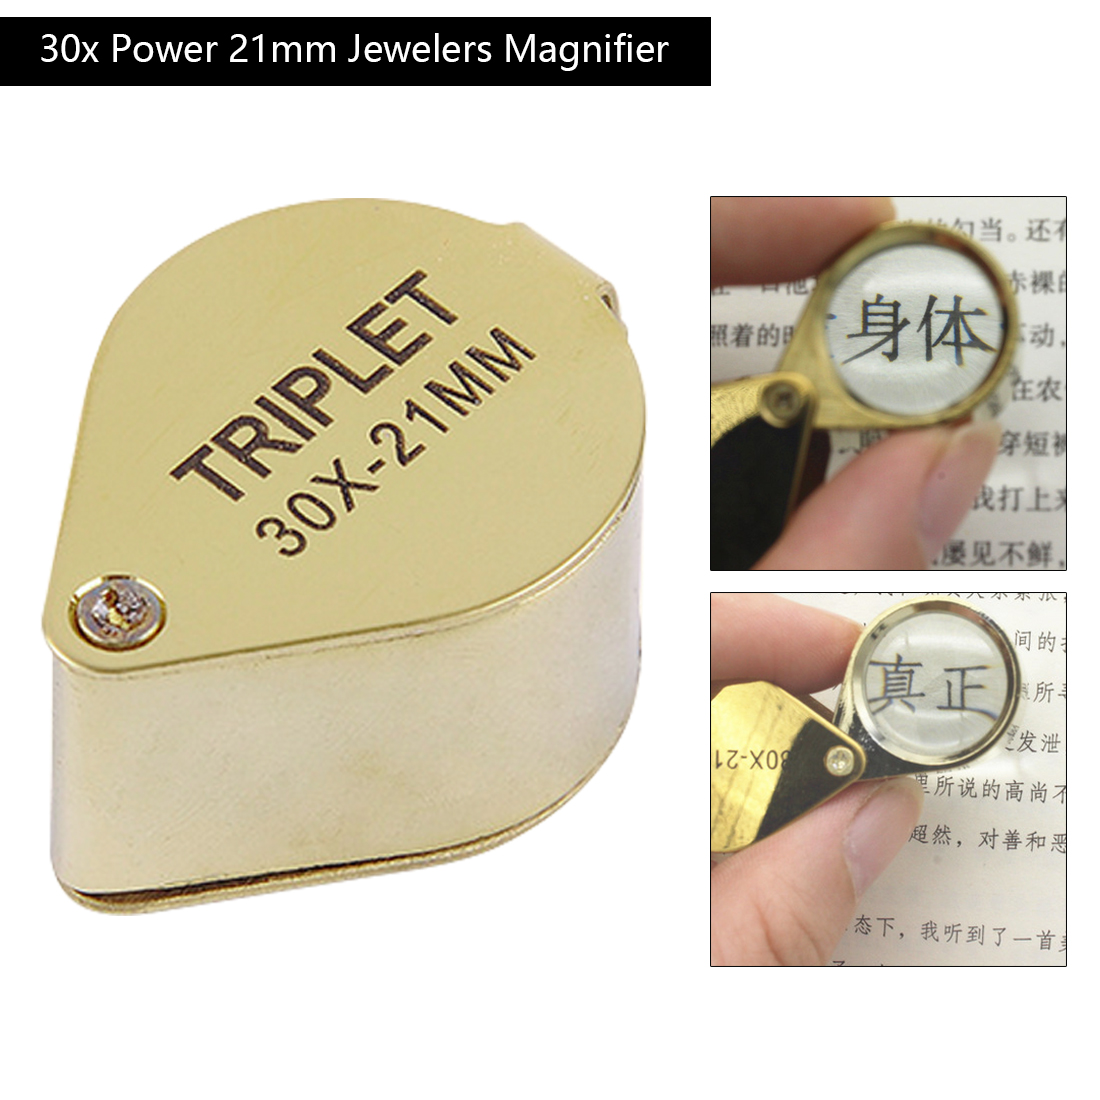 Portable 30X Power 21mm Jewelers Magnifier Gold Eye Loupe Jewelry Store Magnifying Glass Portable 30X Power 21mm Jewelers Magnifier Gold Eye Loupe Jewelry Store Magnifying Glass